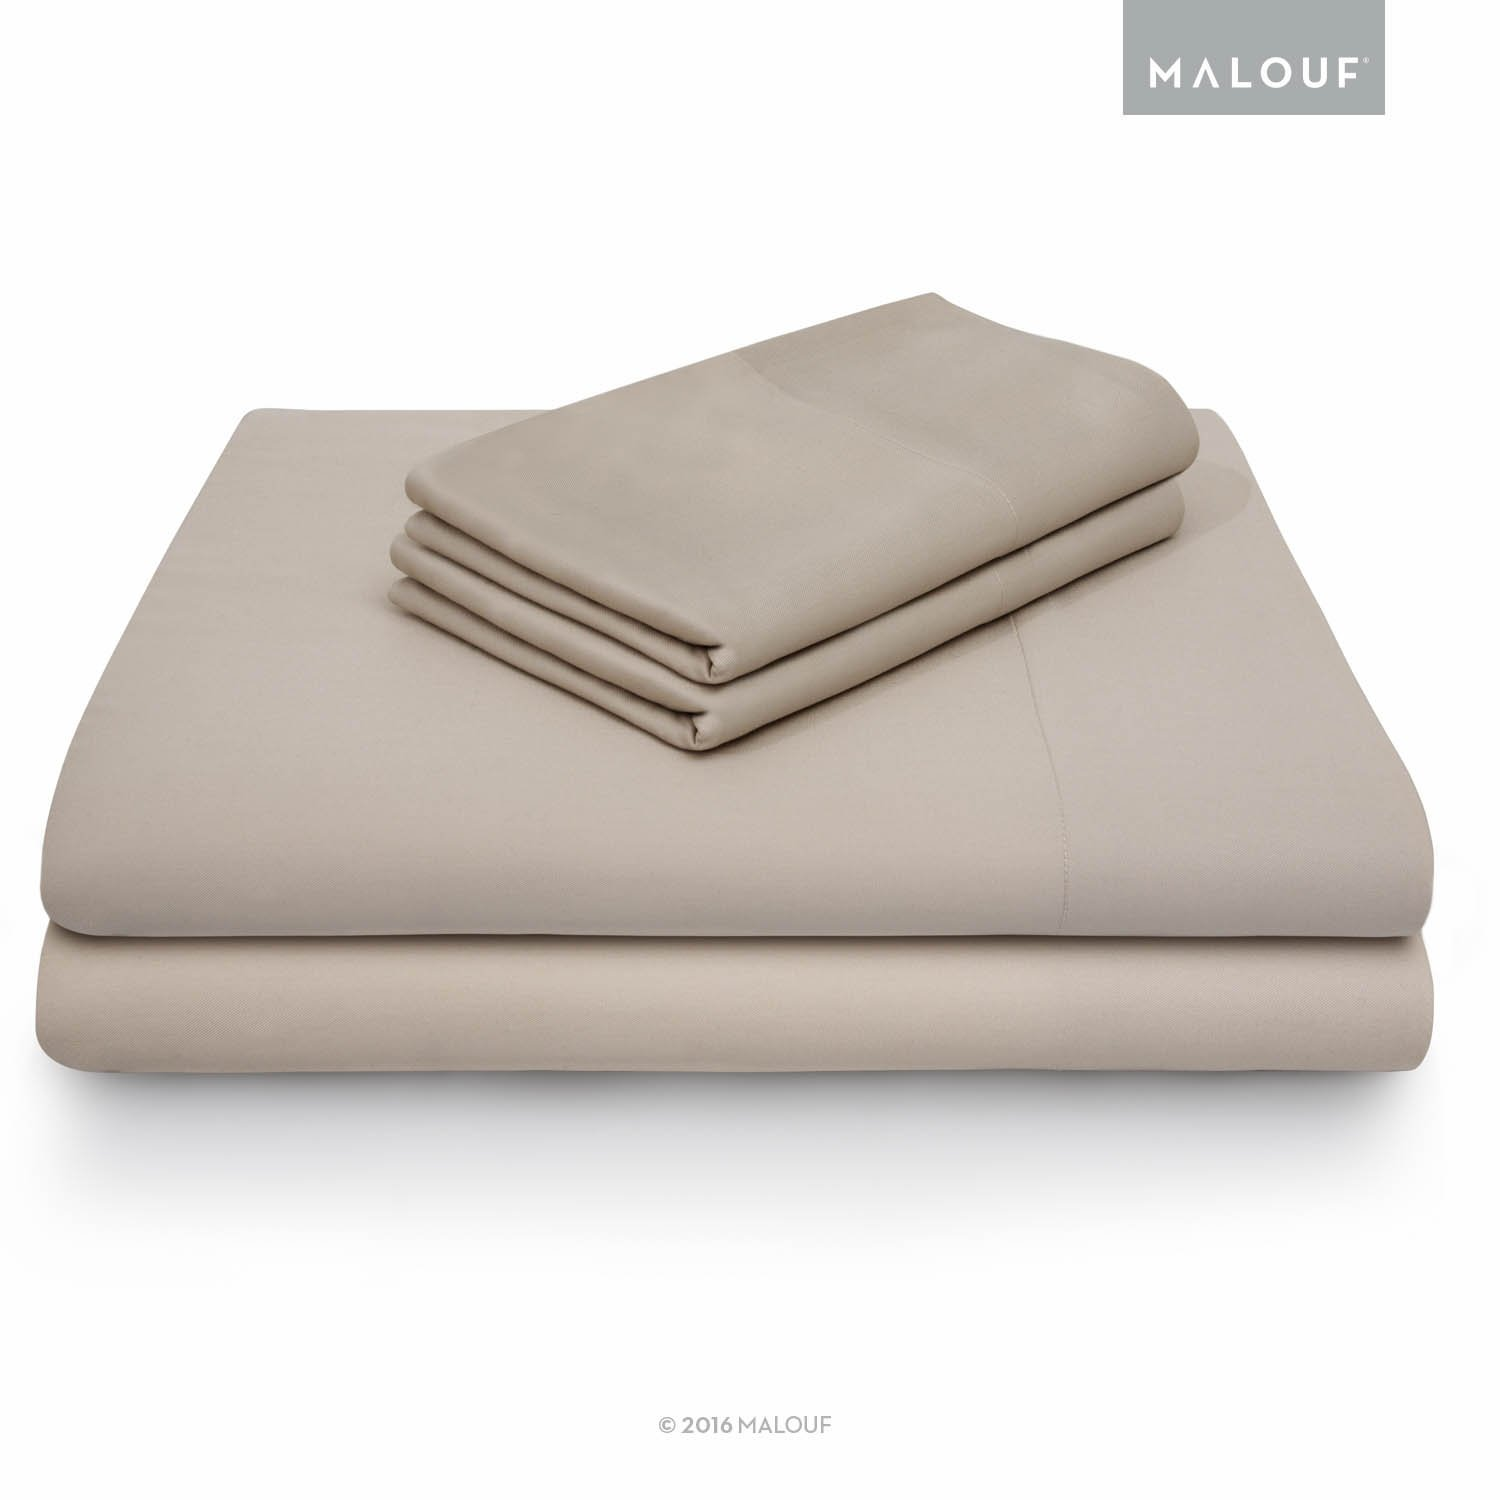 MALOUF Split Head 100% Rayon From Bamboo Sheet Set - 4-pc Set - Queen - Driftwood